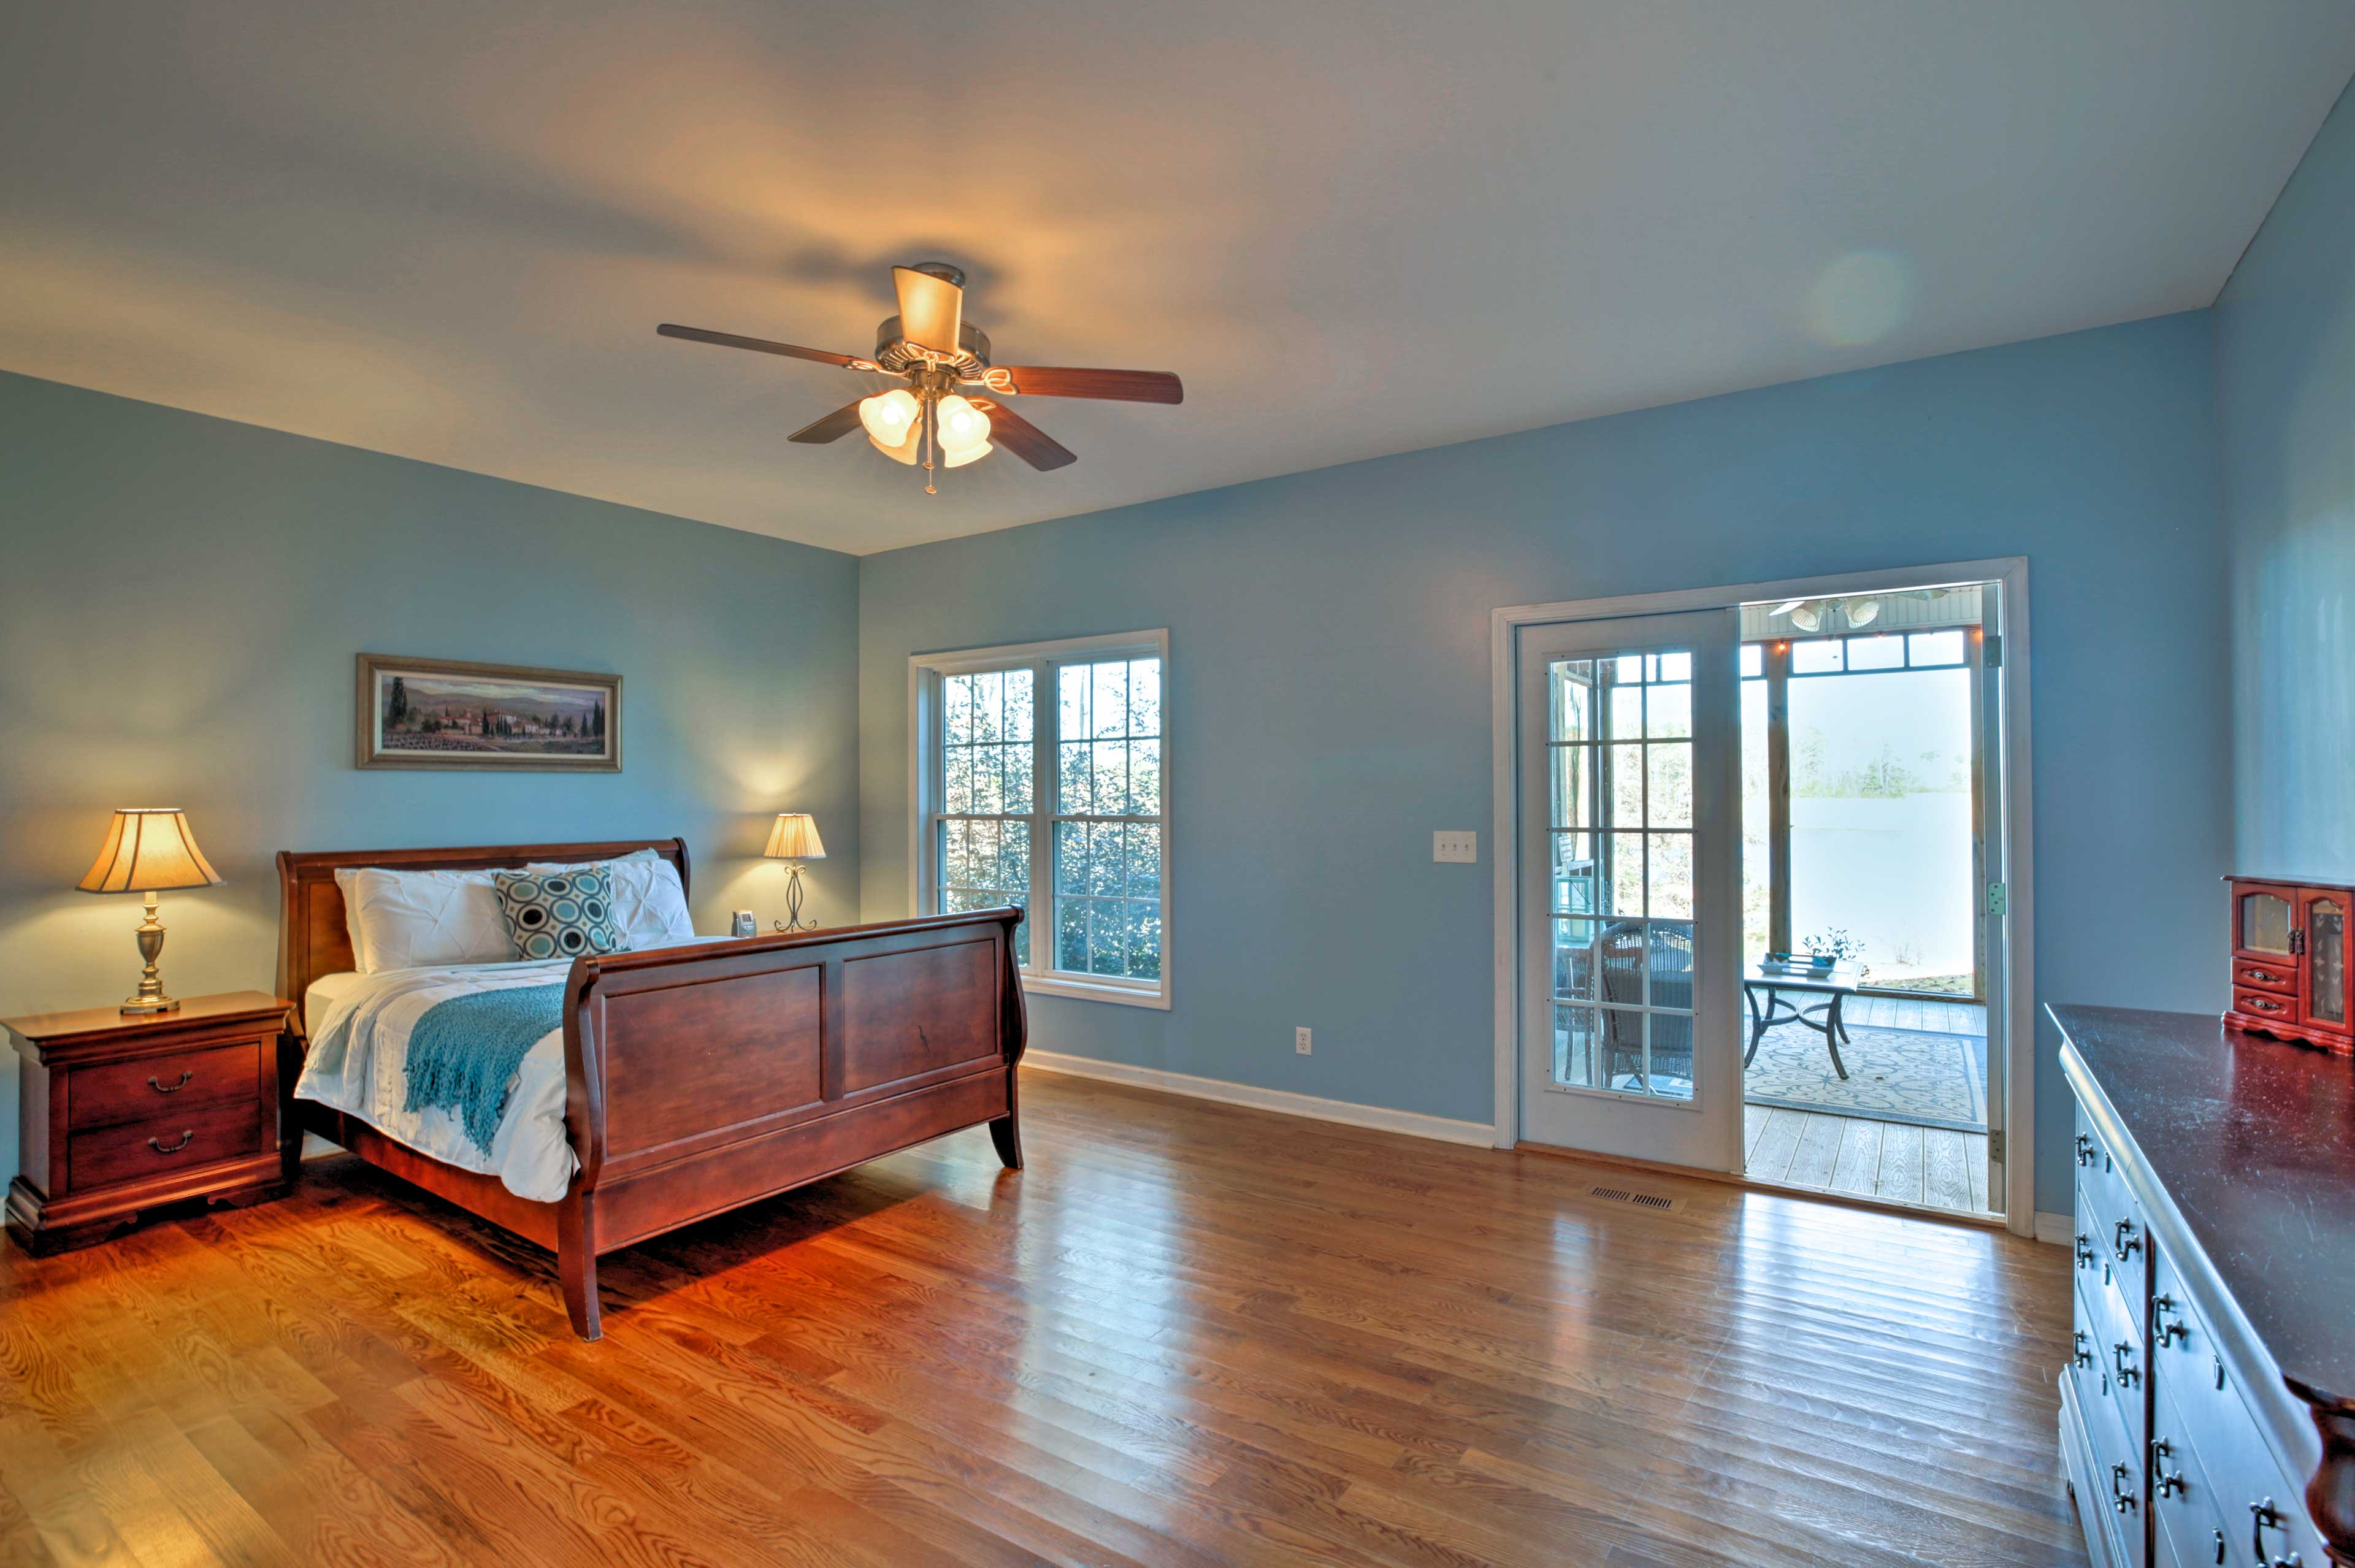 Master bedrooms can be found upstairs and downstairs.